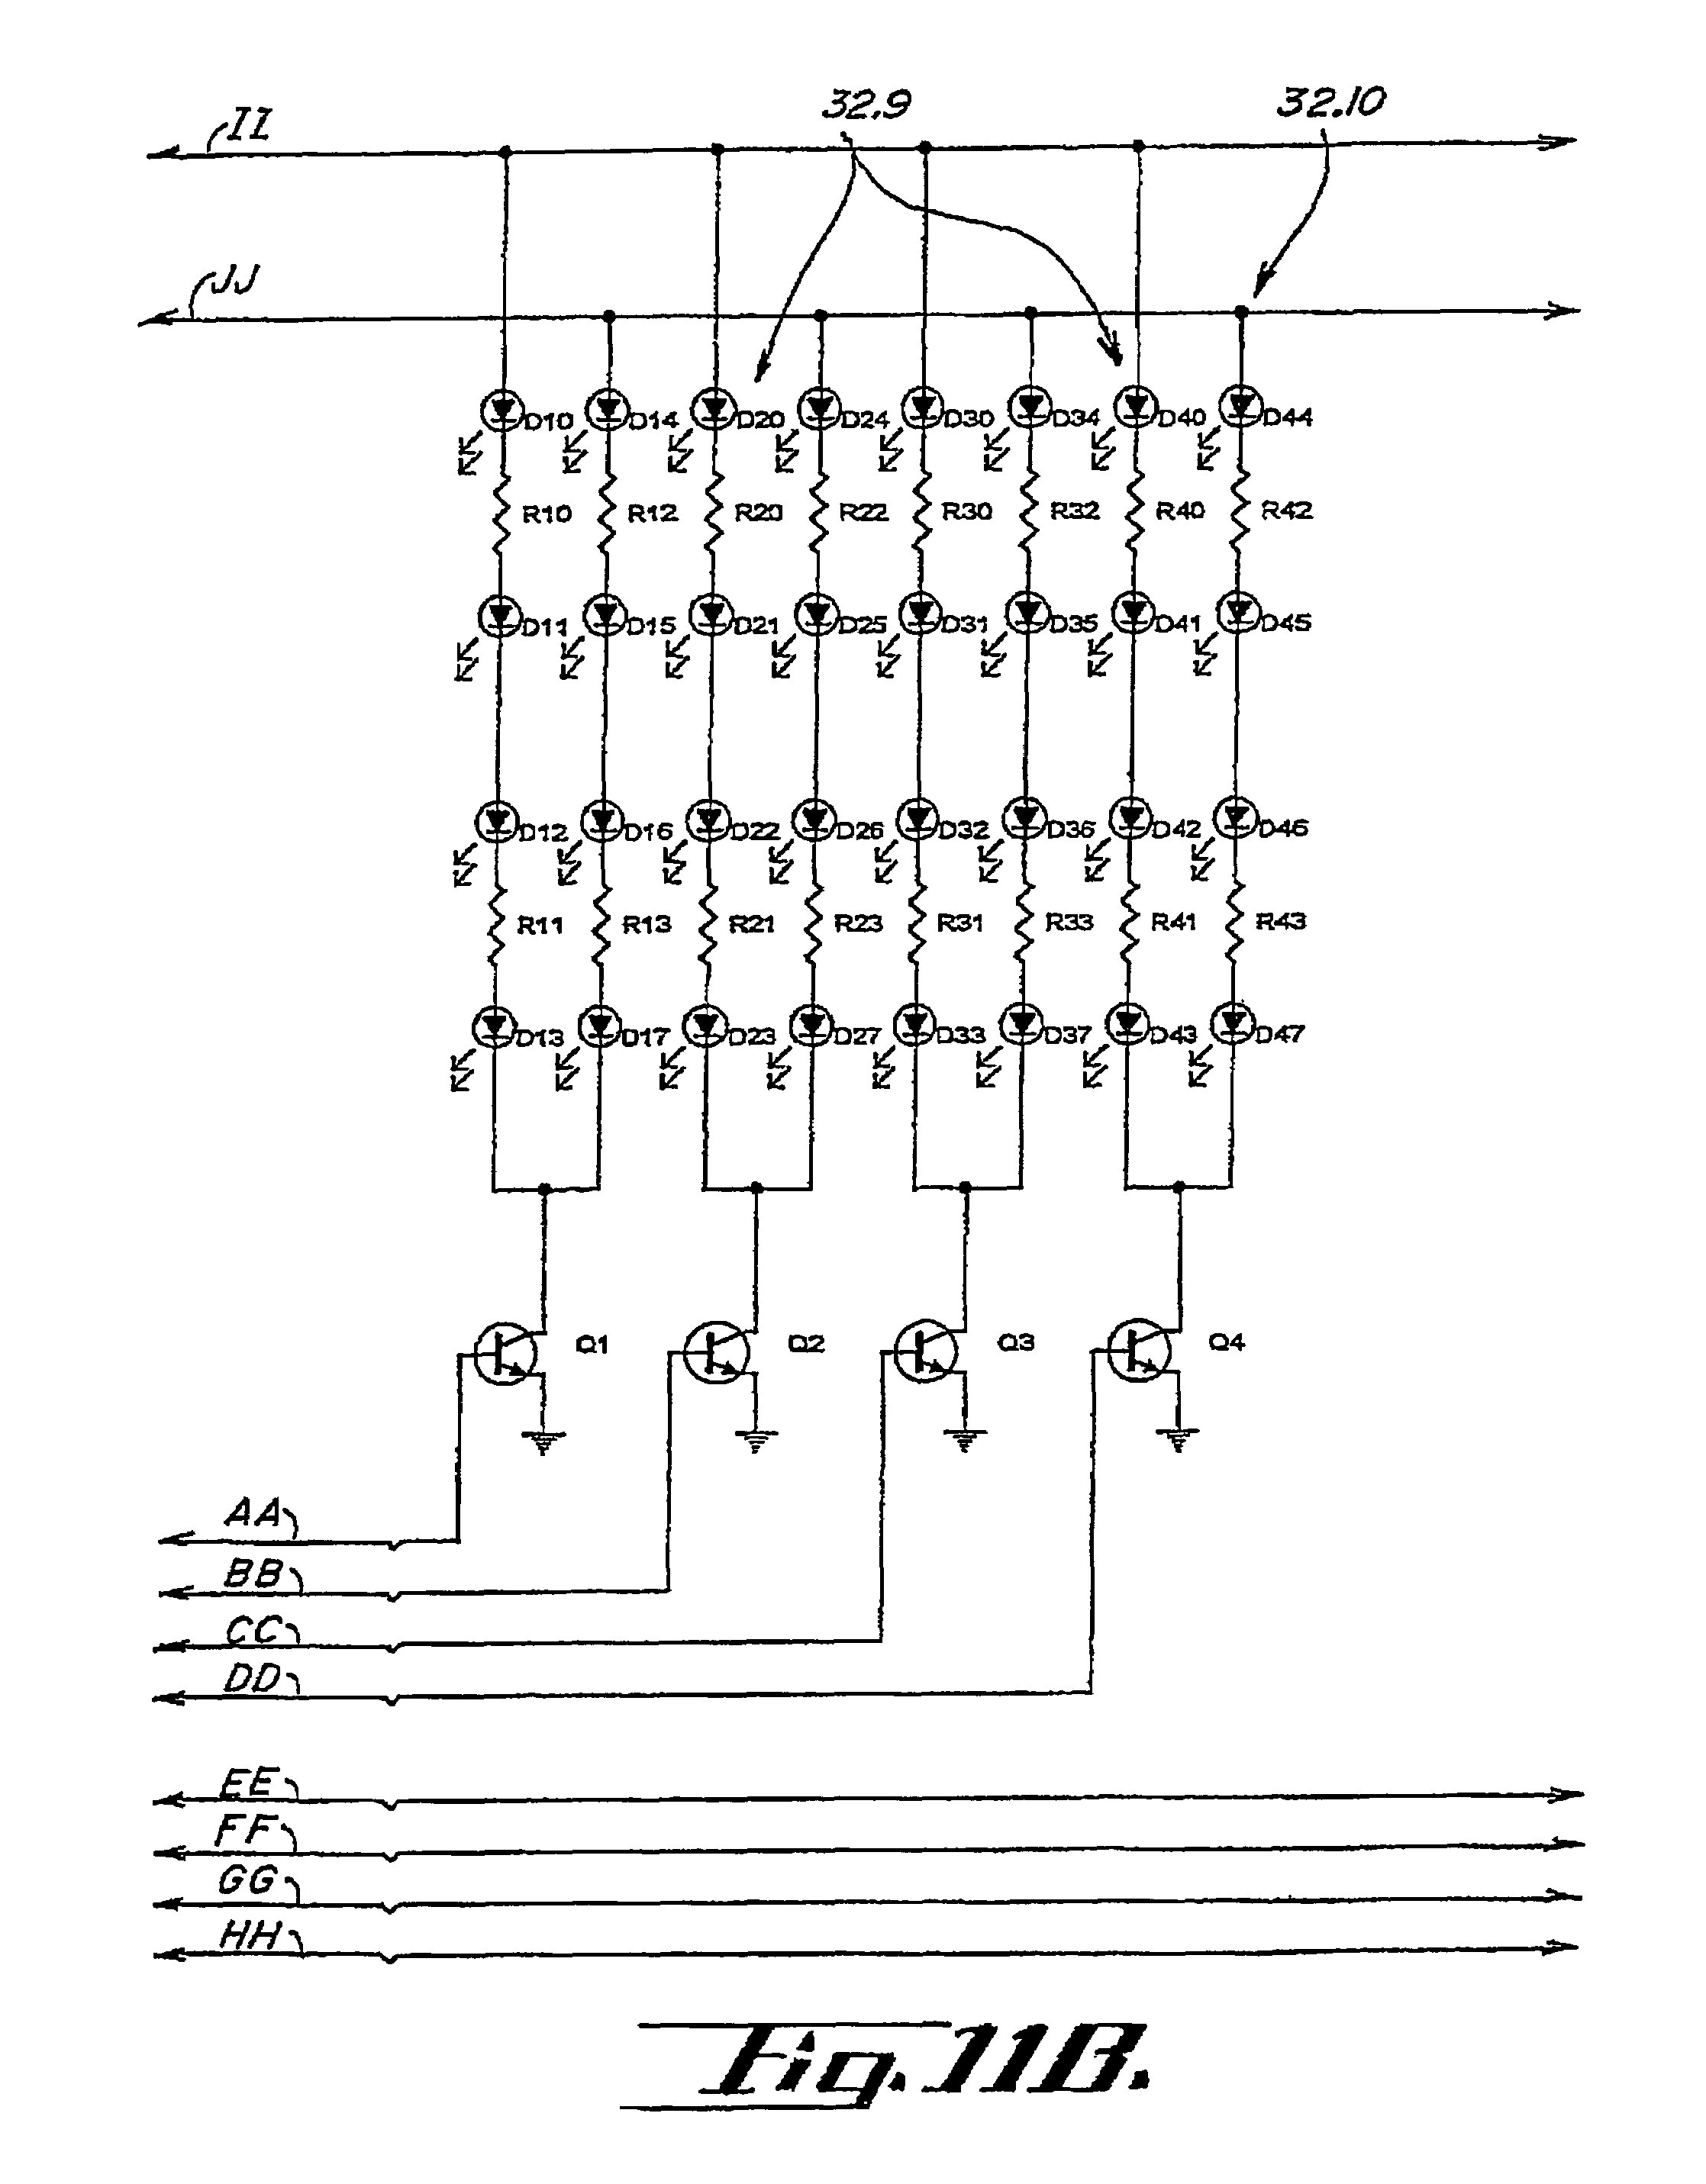 Lights Wiring Diagram On Wiring Diagram For 3 Wire Christmas Lights